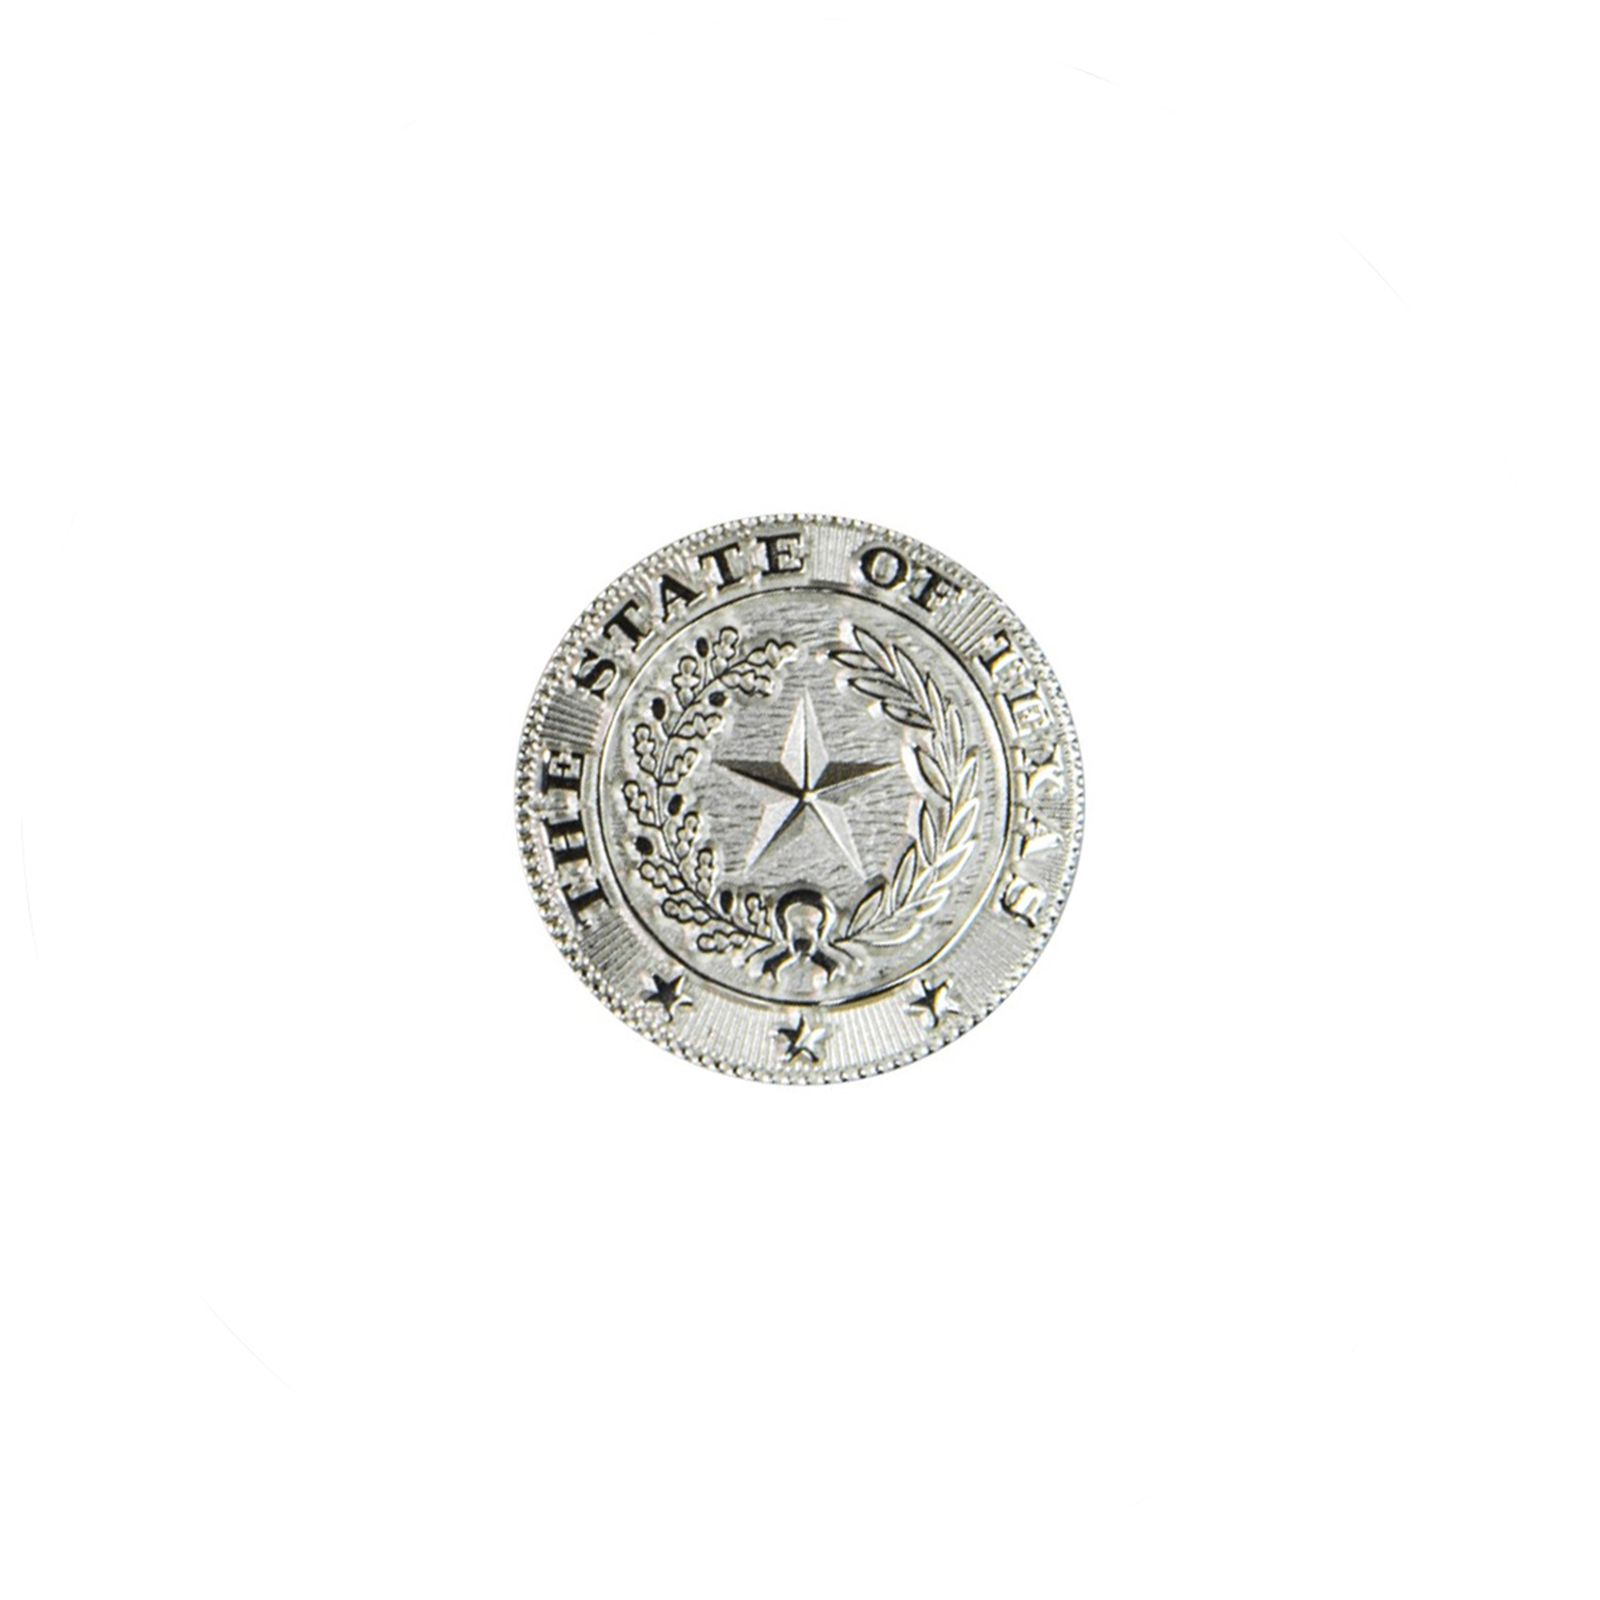 Texas State Seal Silver-Plated Lapel Pin